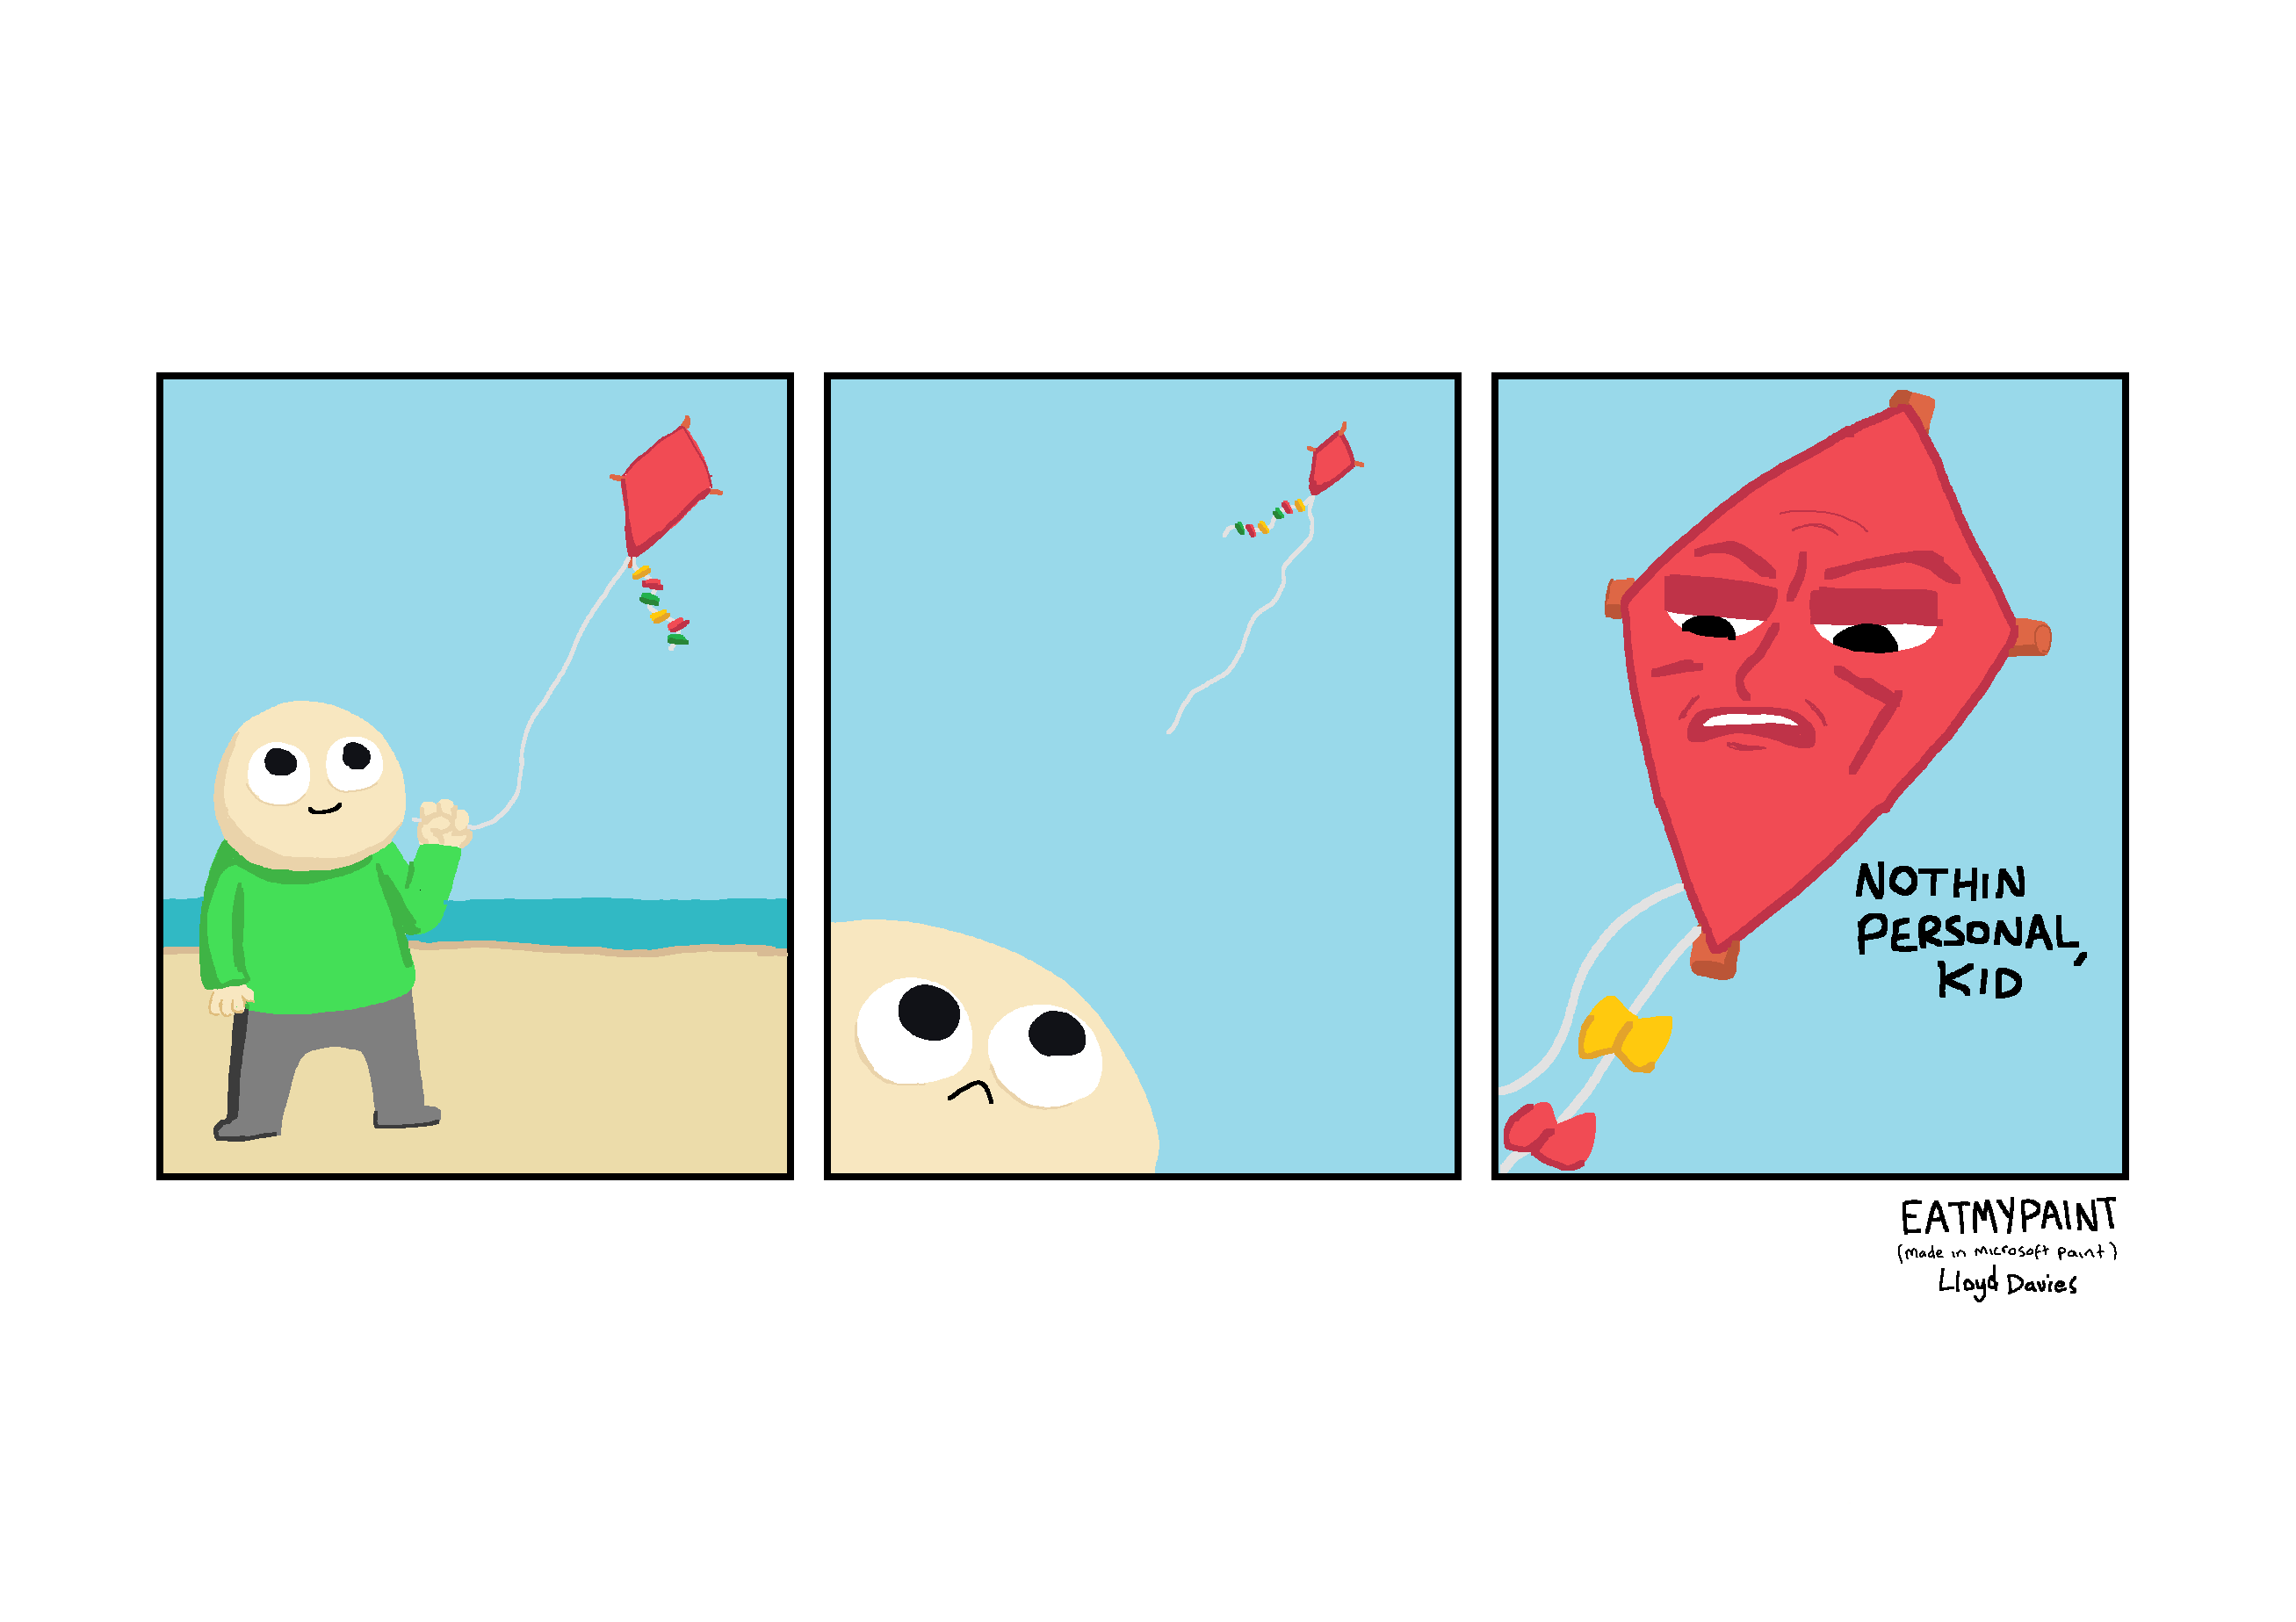 That's the last time I buy a kite from a witch